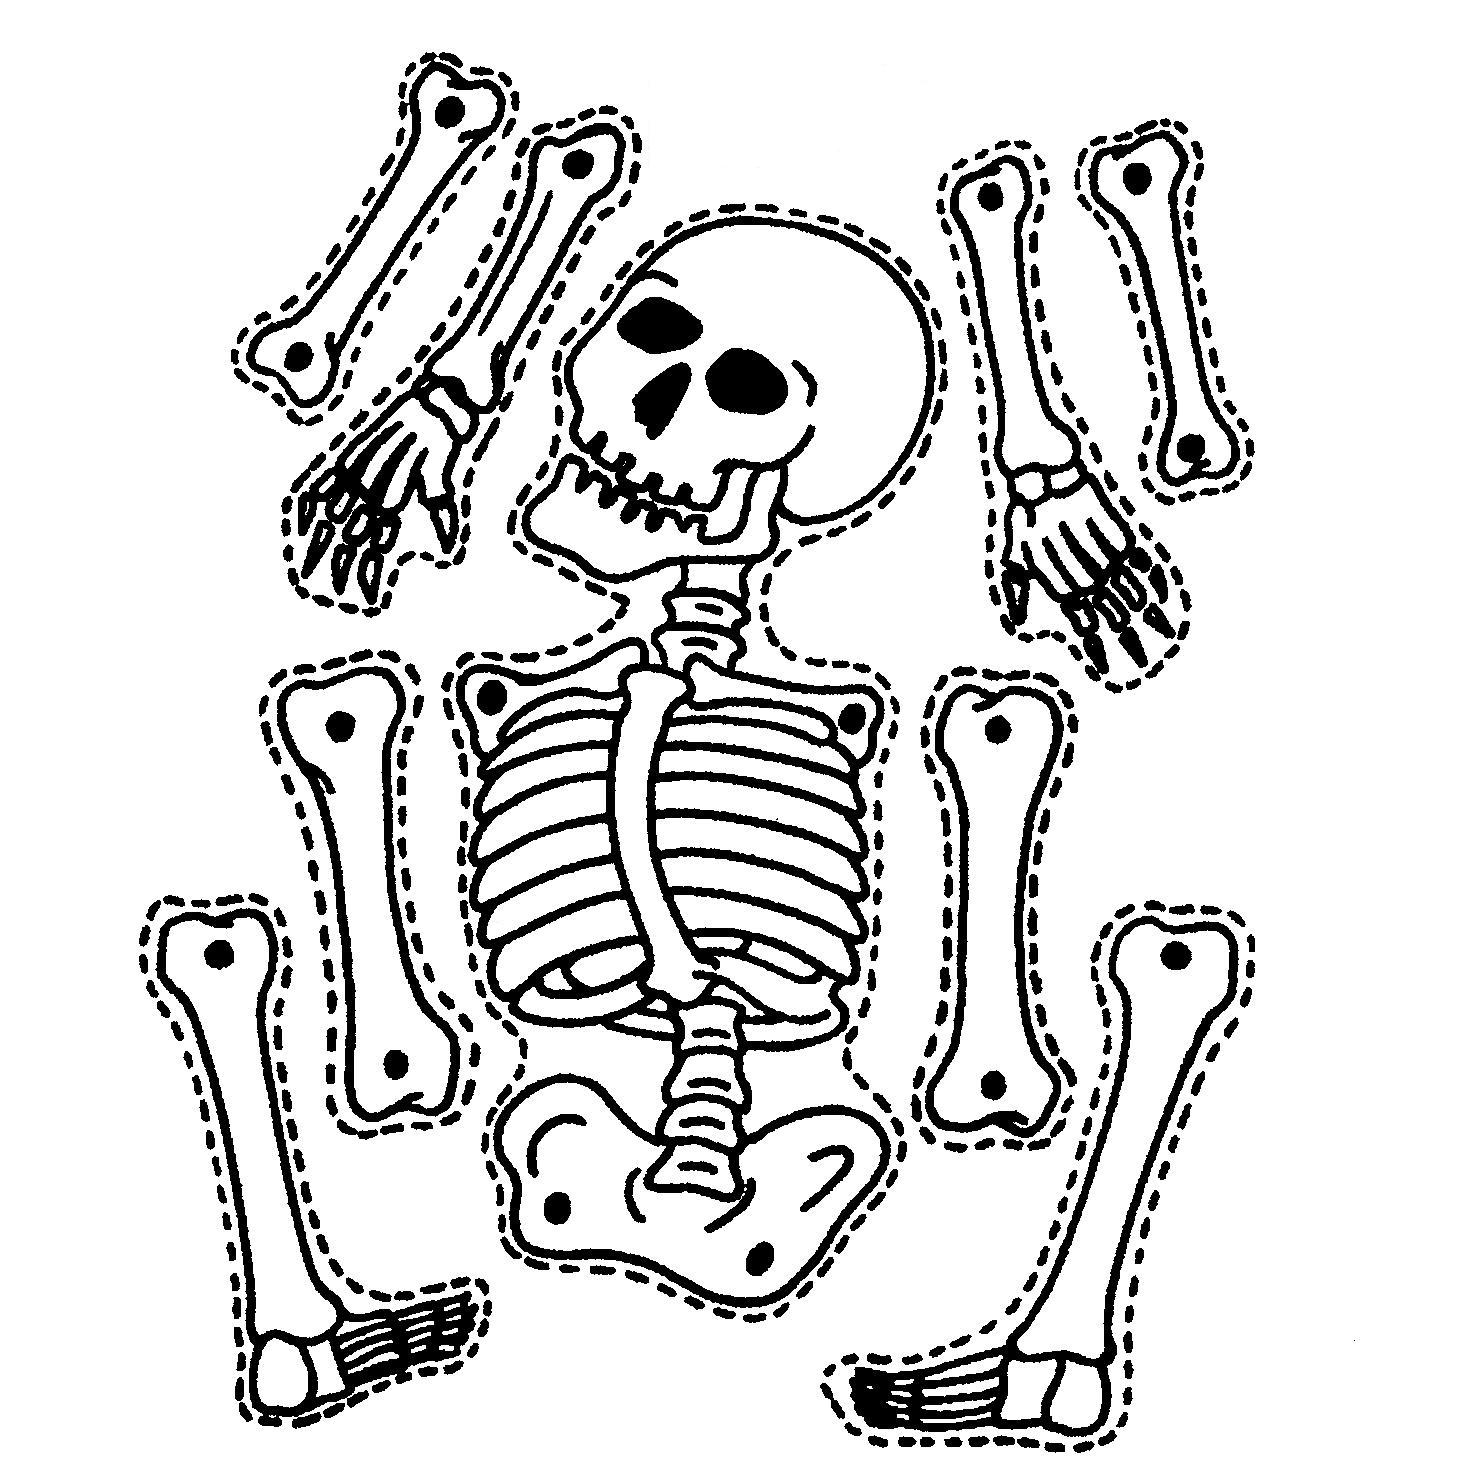 z00_mechanicalskeleton